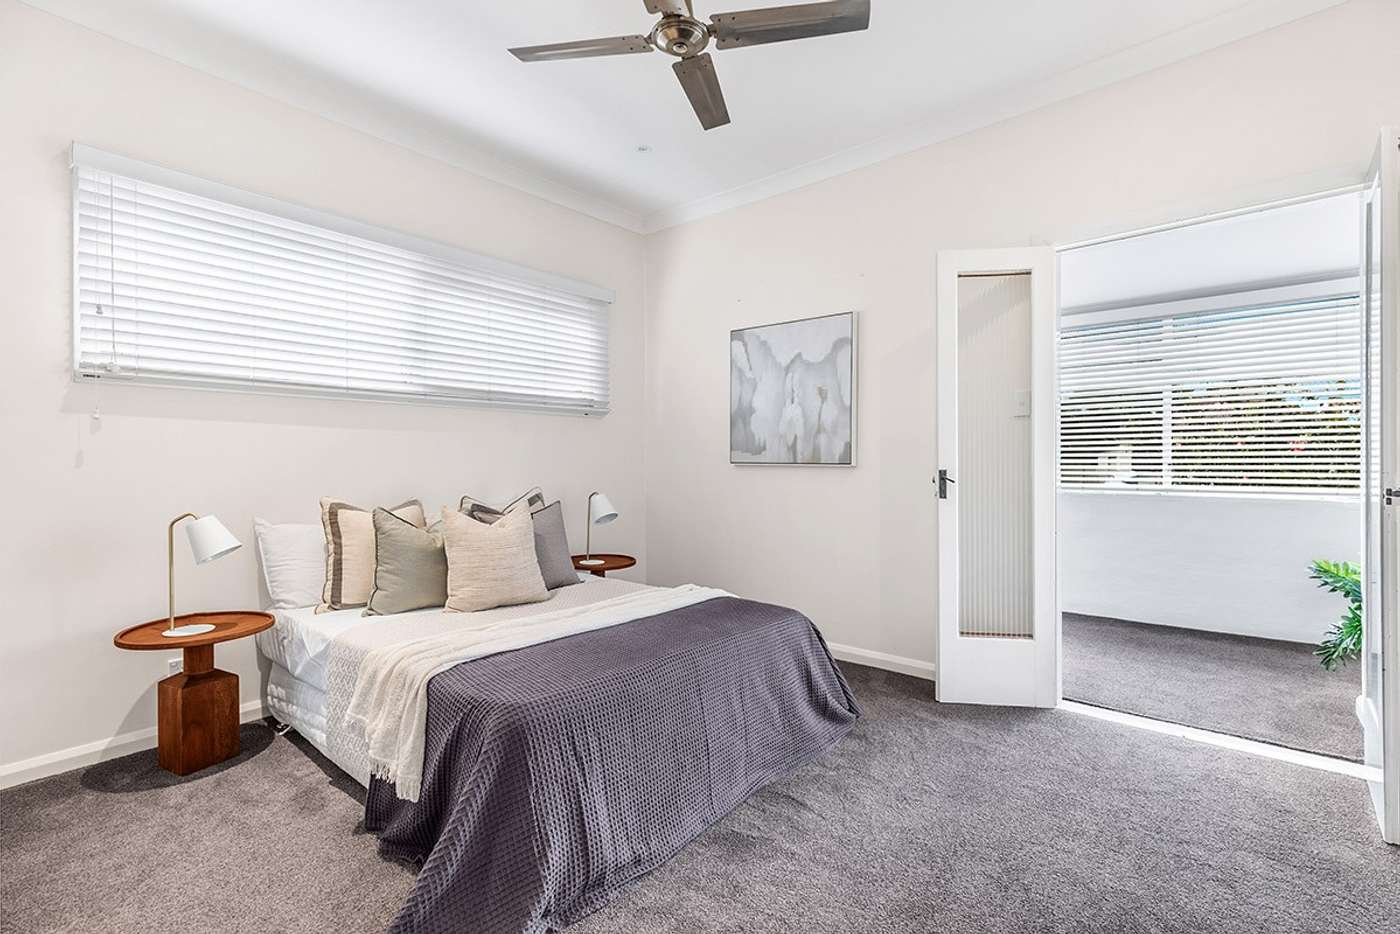 Sixth view of Homely house listing, 5 Henley Street, New Lambton NSW 2305